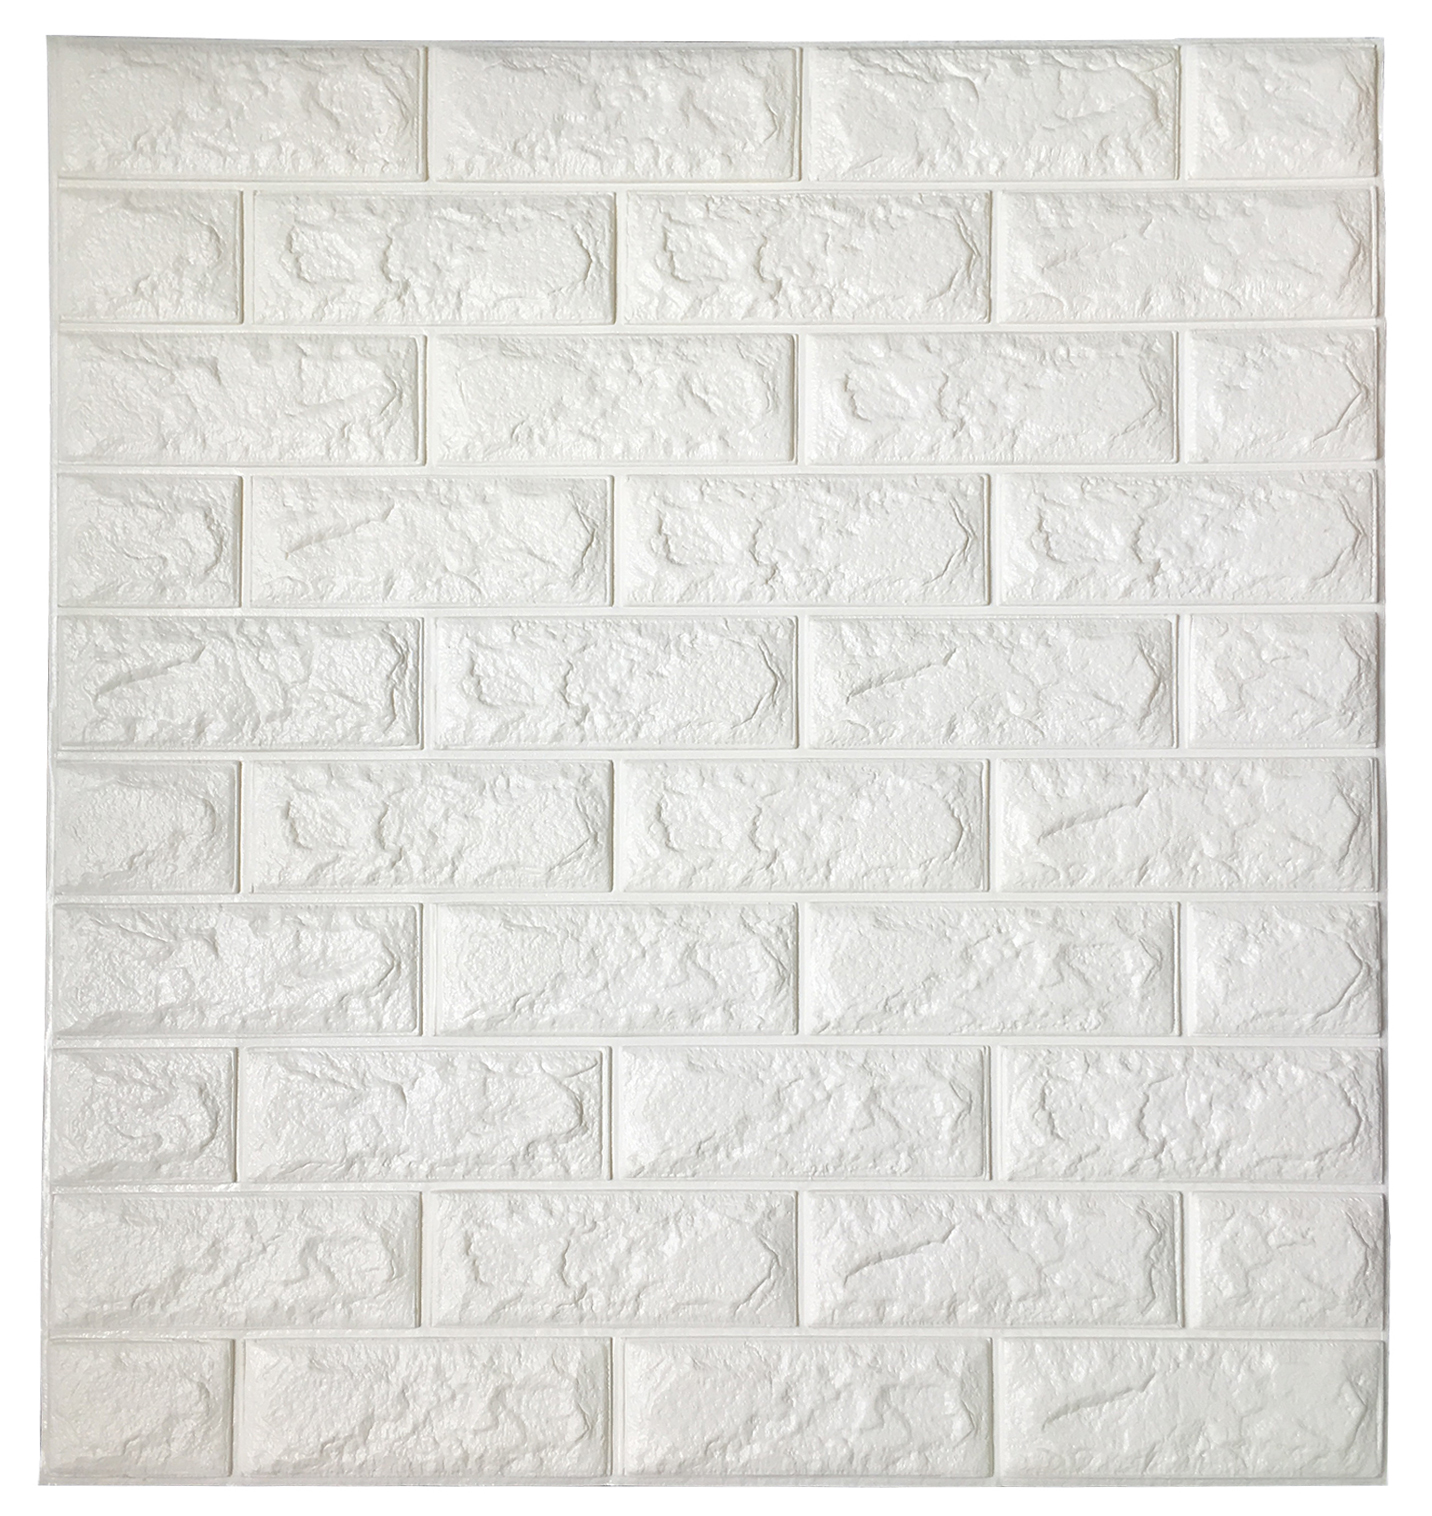 3D Peel & Stick Wallpaper Brick Design 10 Sheets 59 Sq.Ft